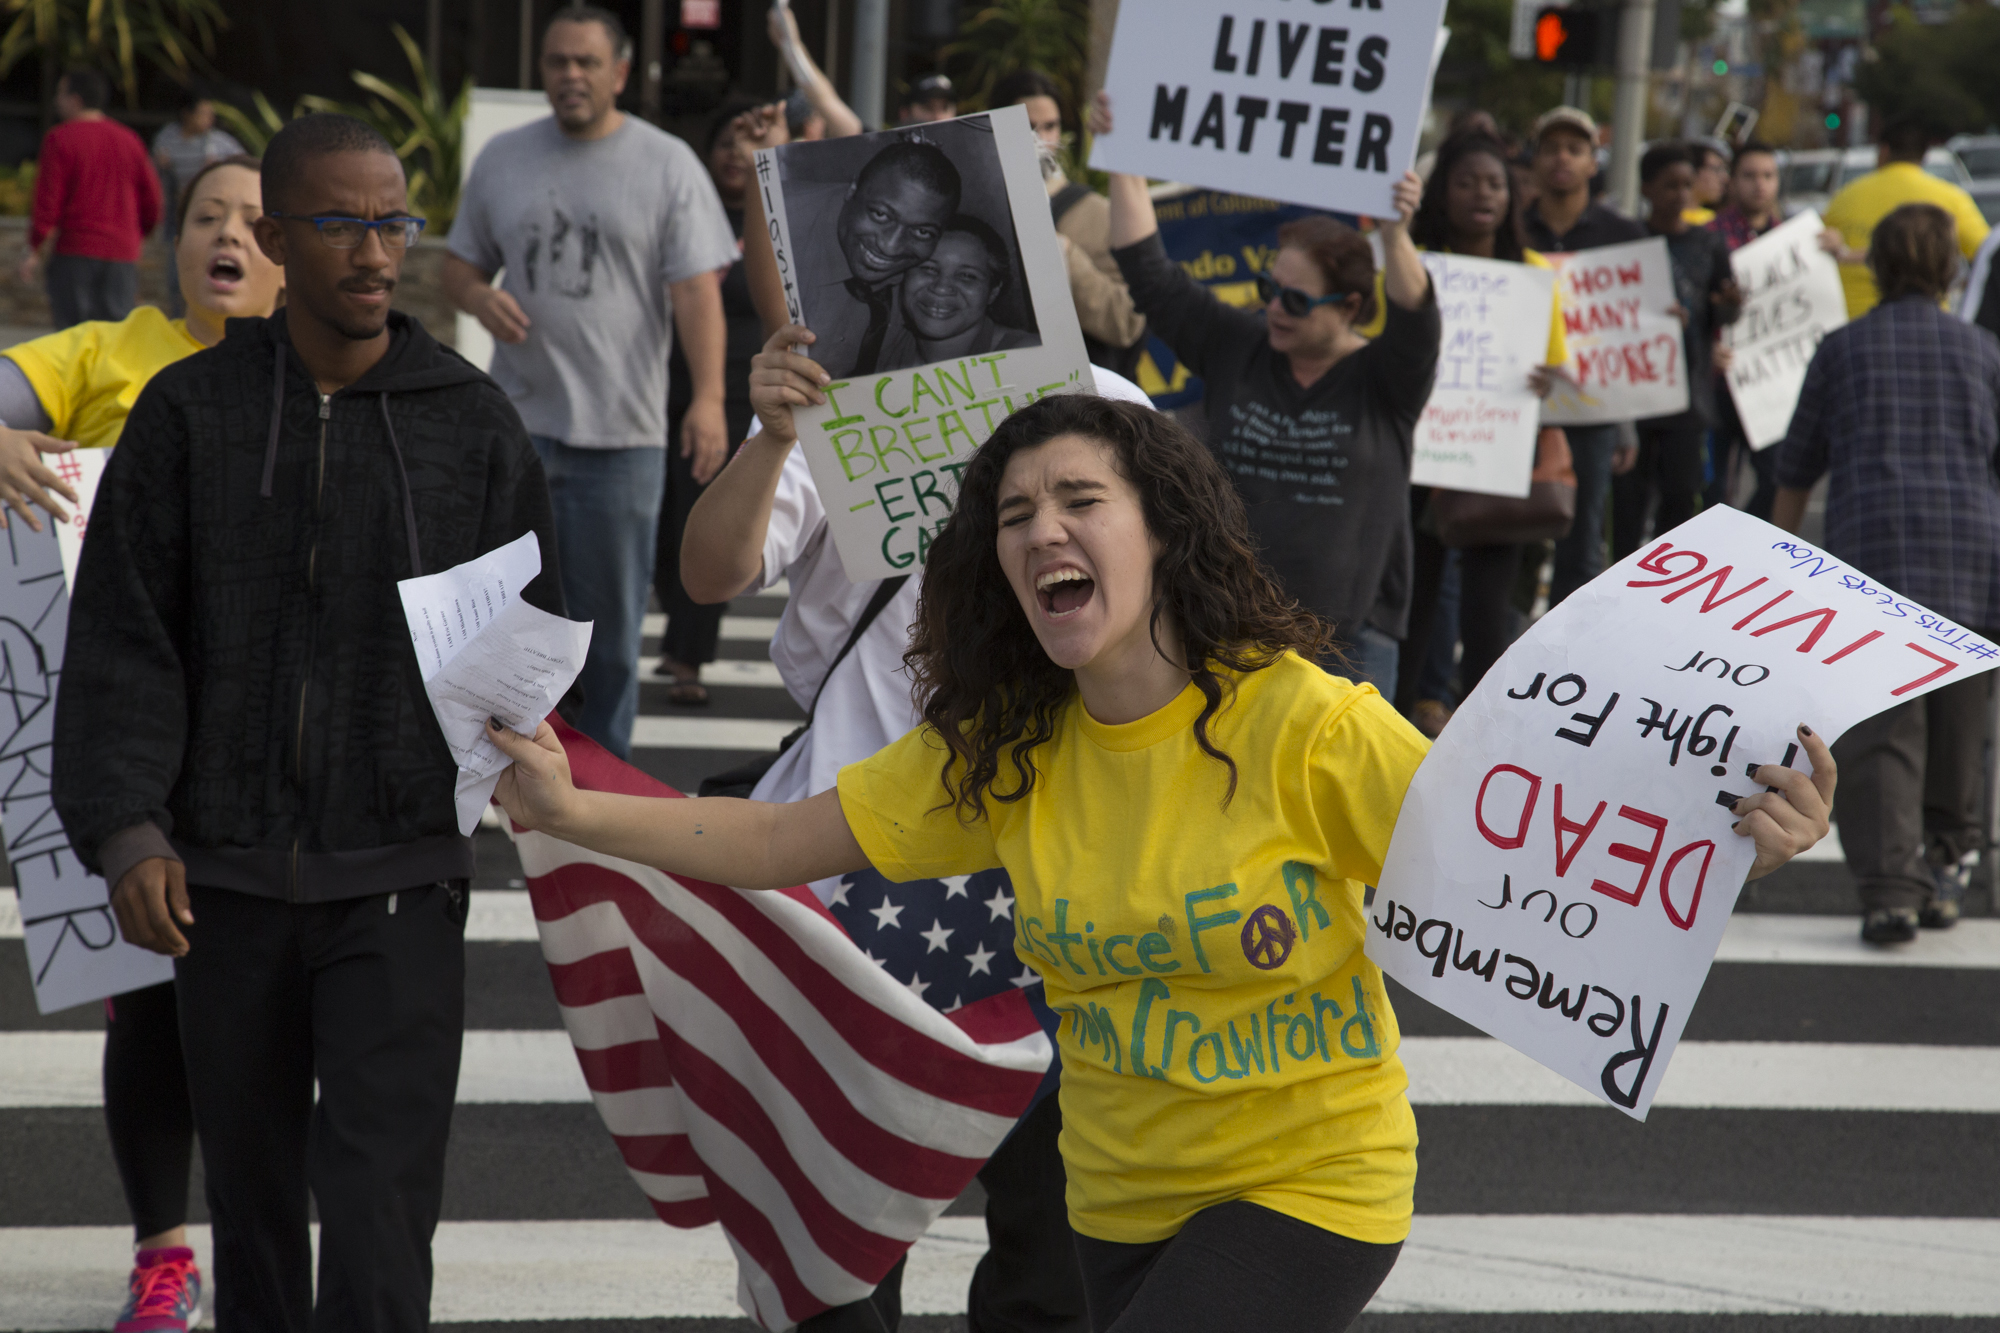 Students organize protest